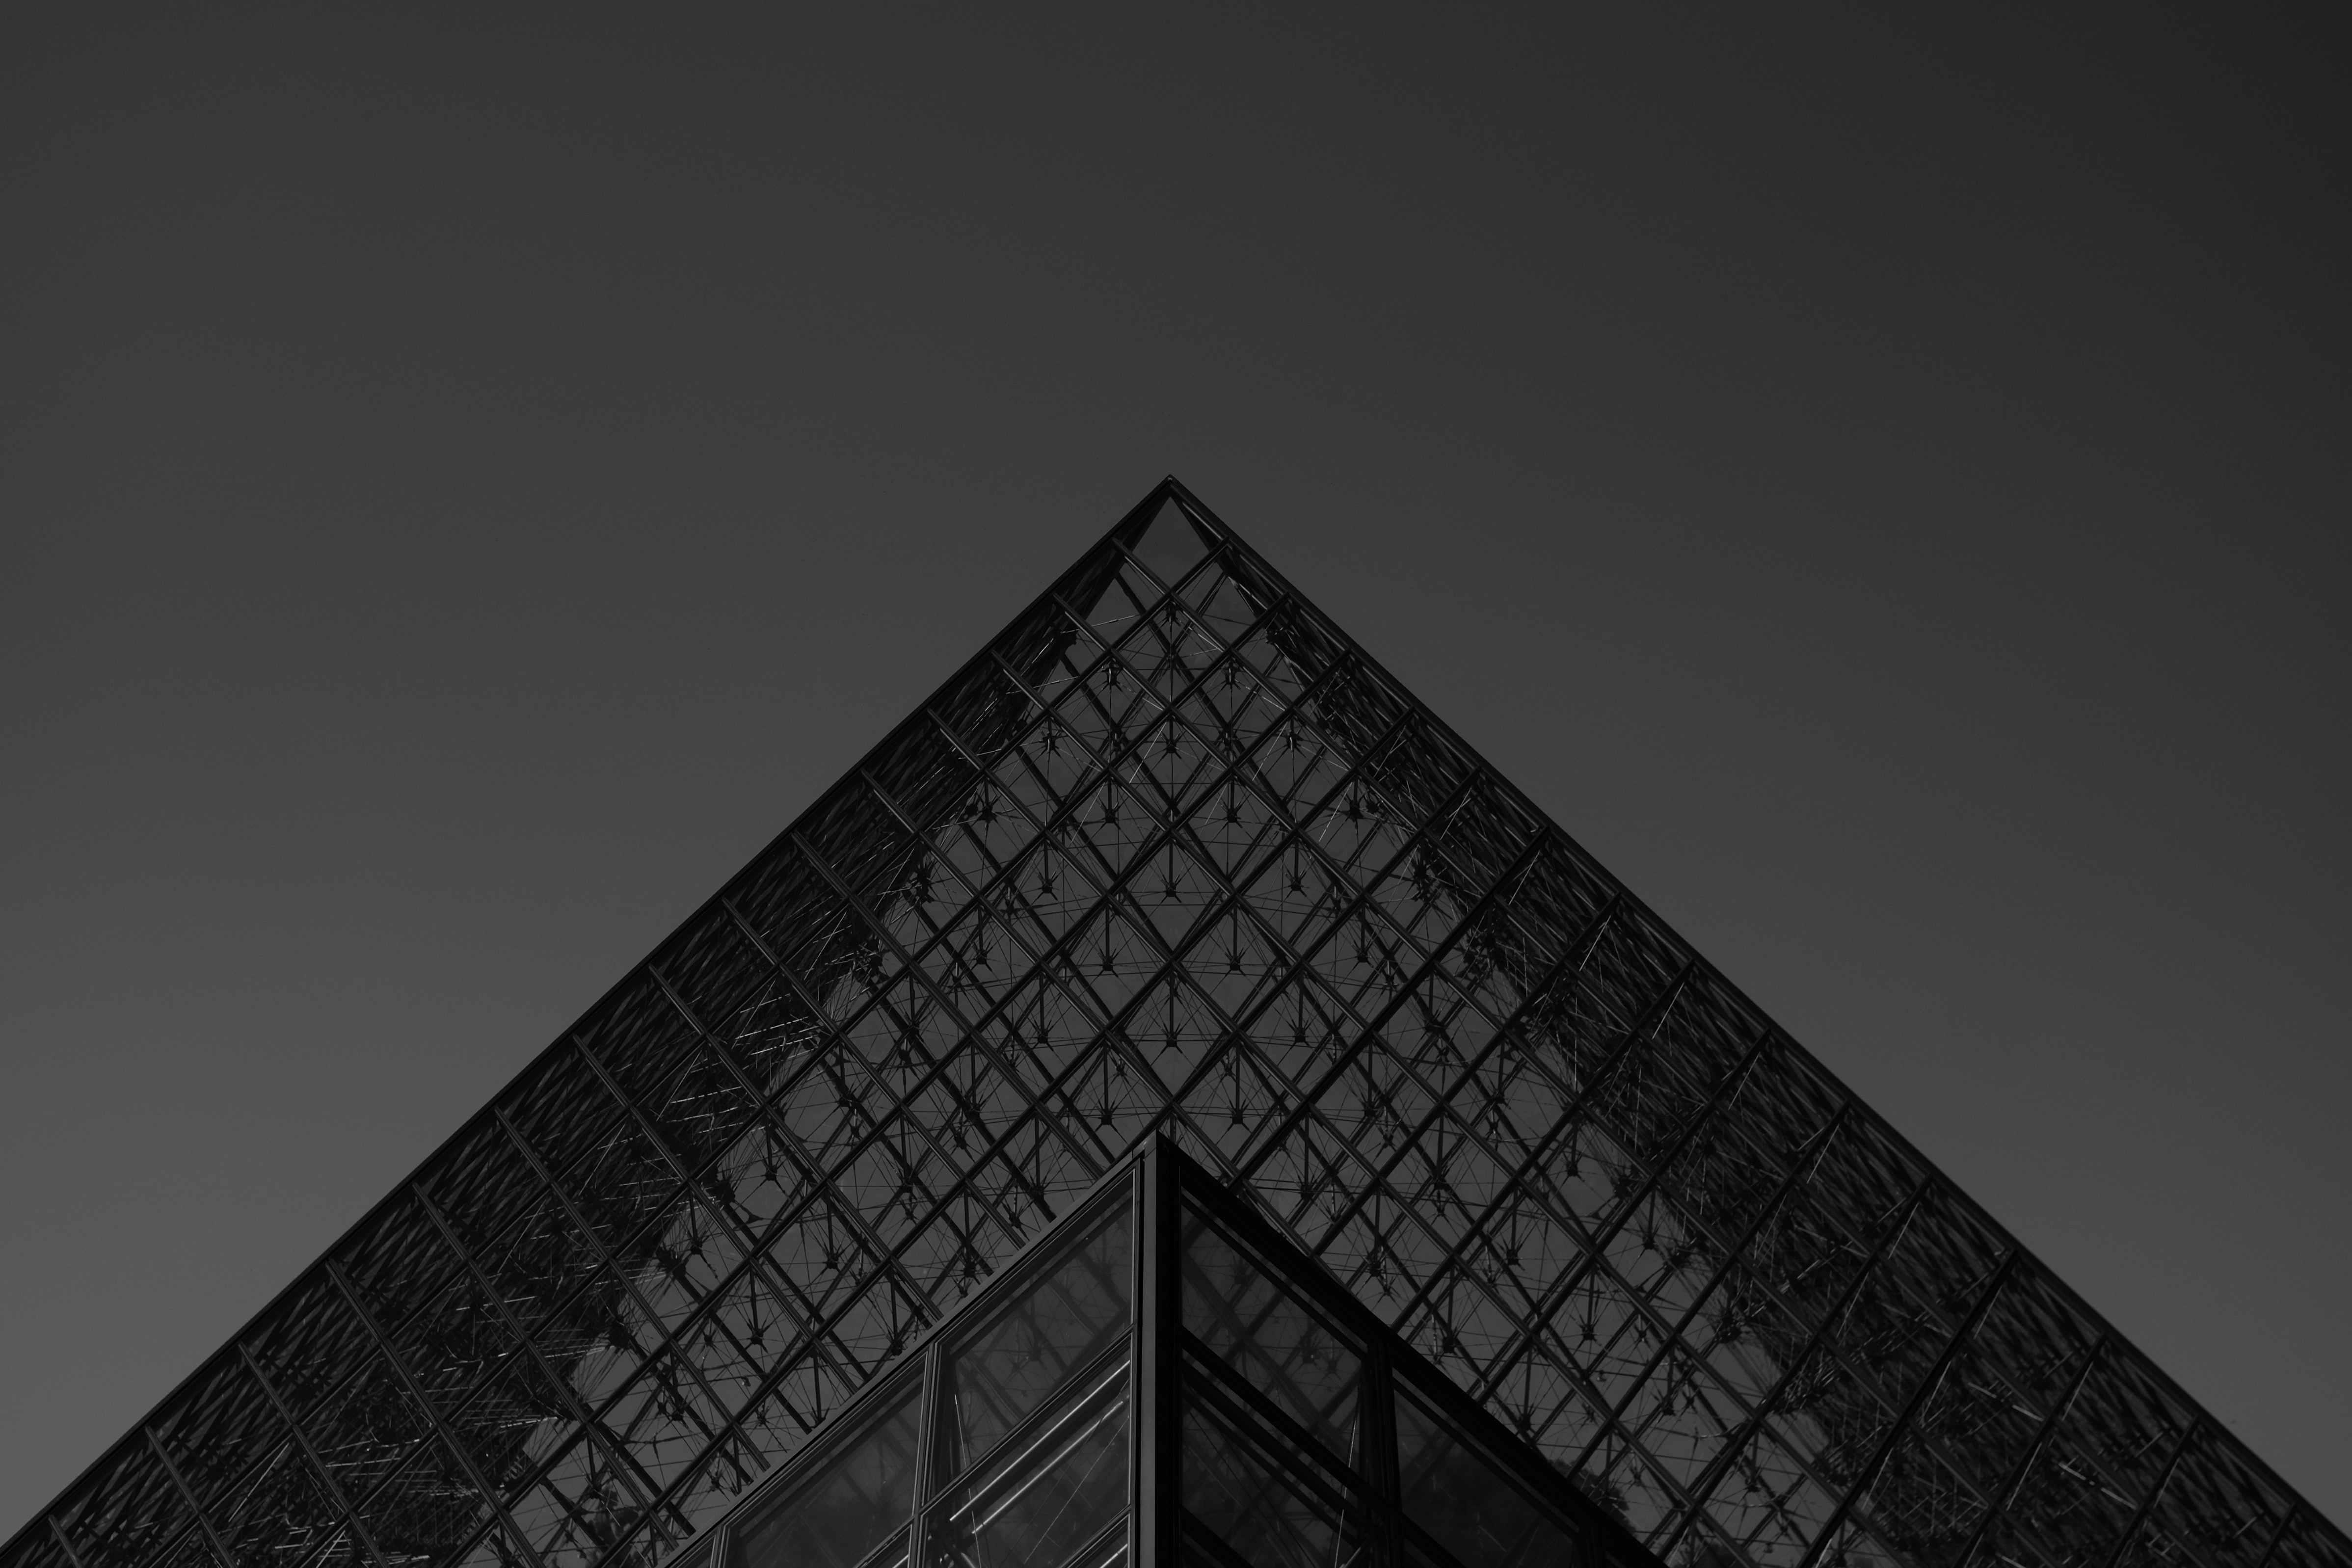 Black and white shot of the glass pyramid at Louvre Museum in Paris